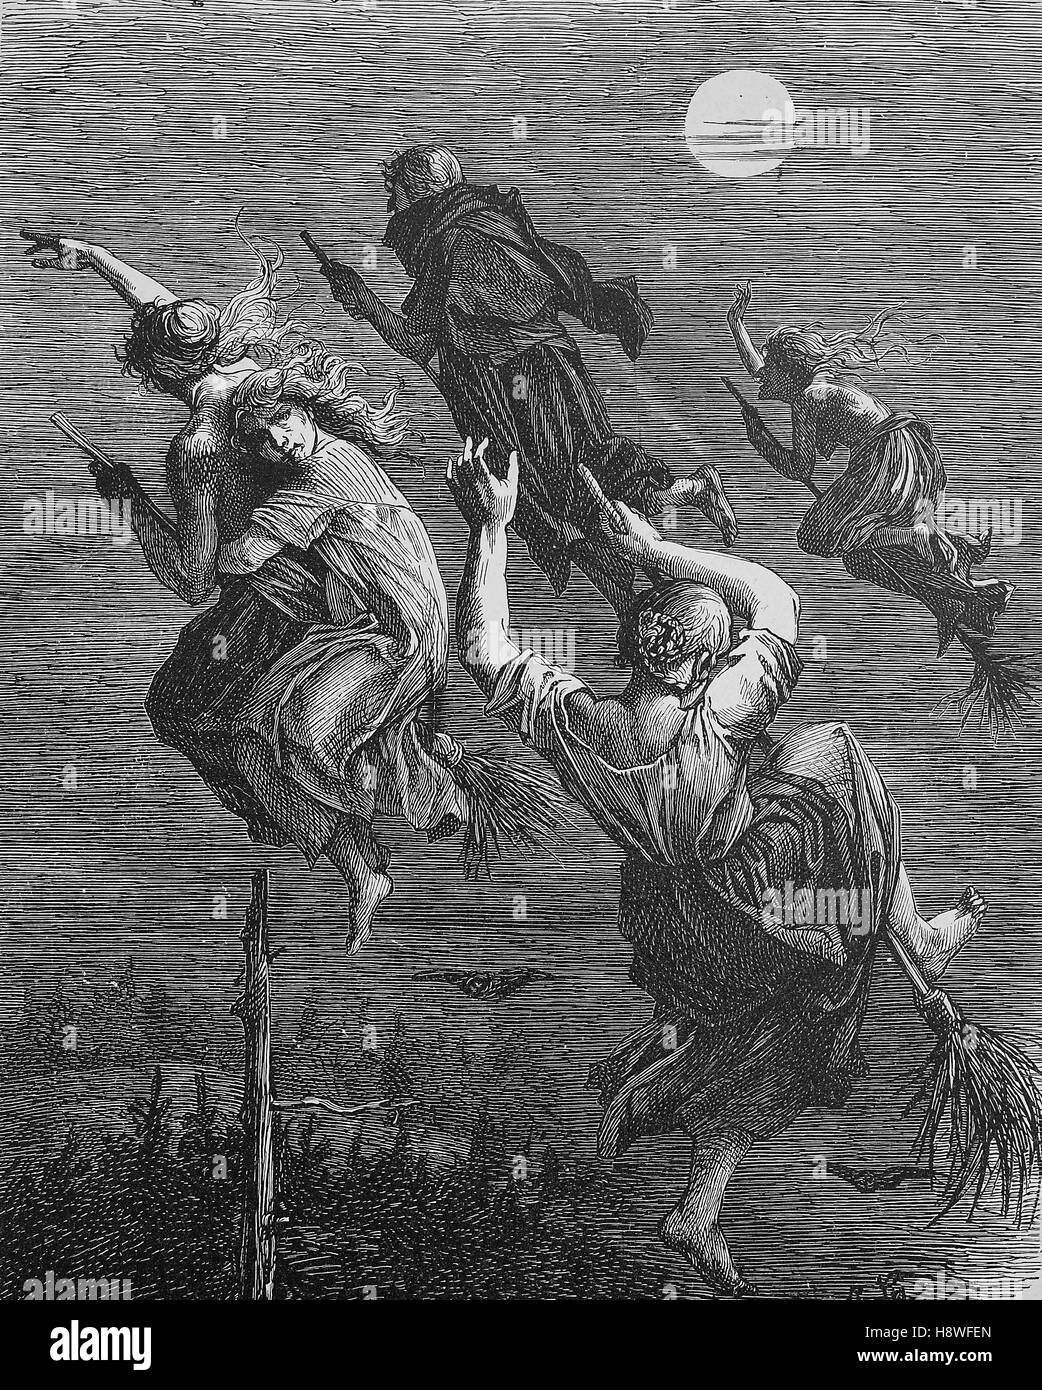 Witches ride on the broom through the night - Stock Image